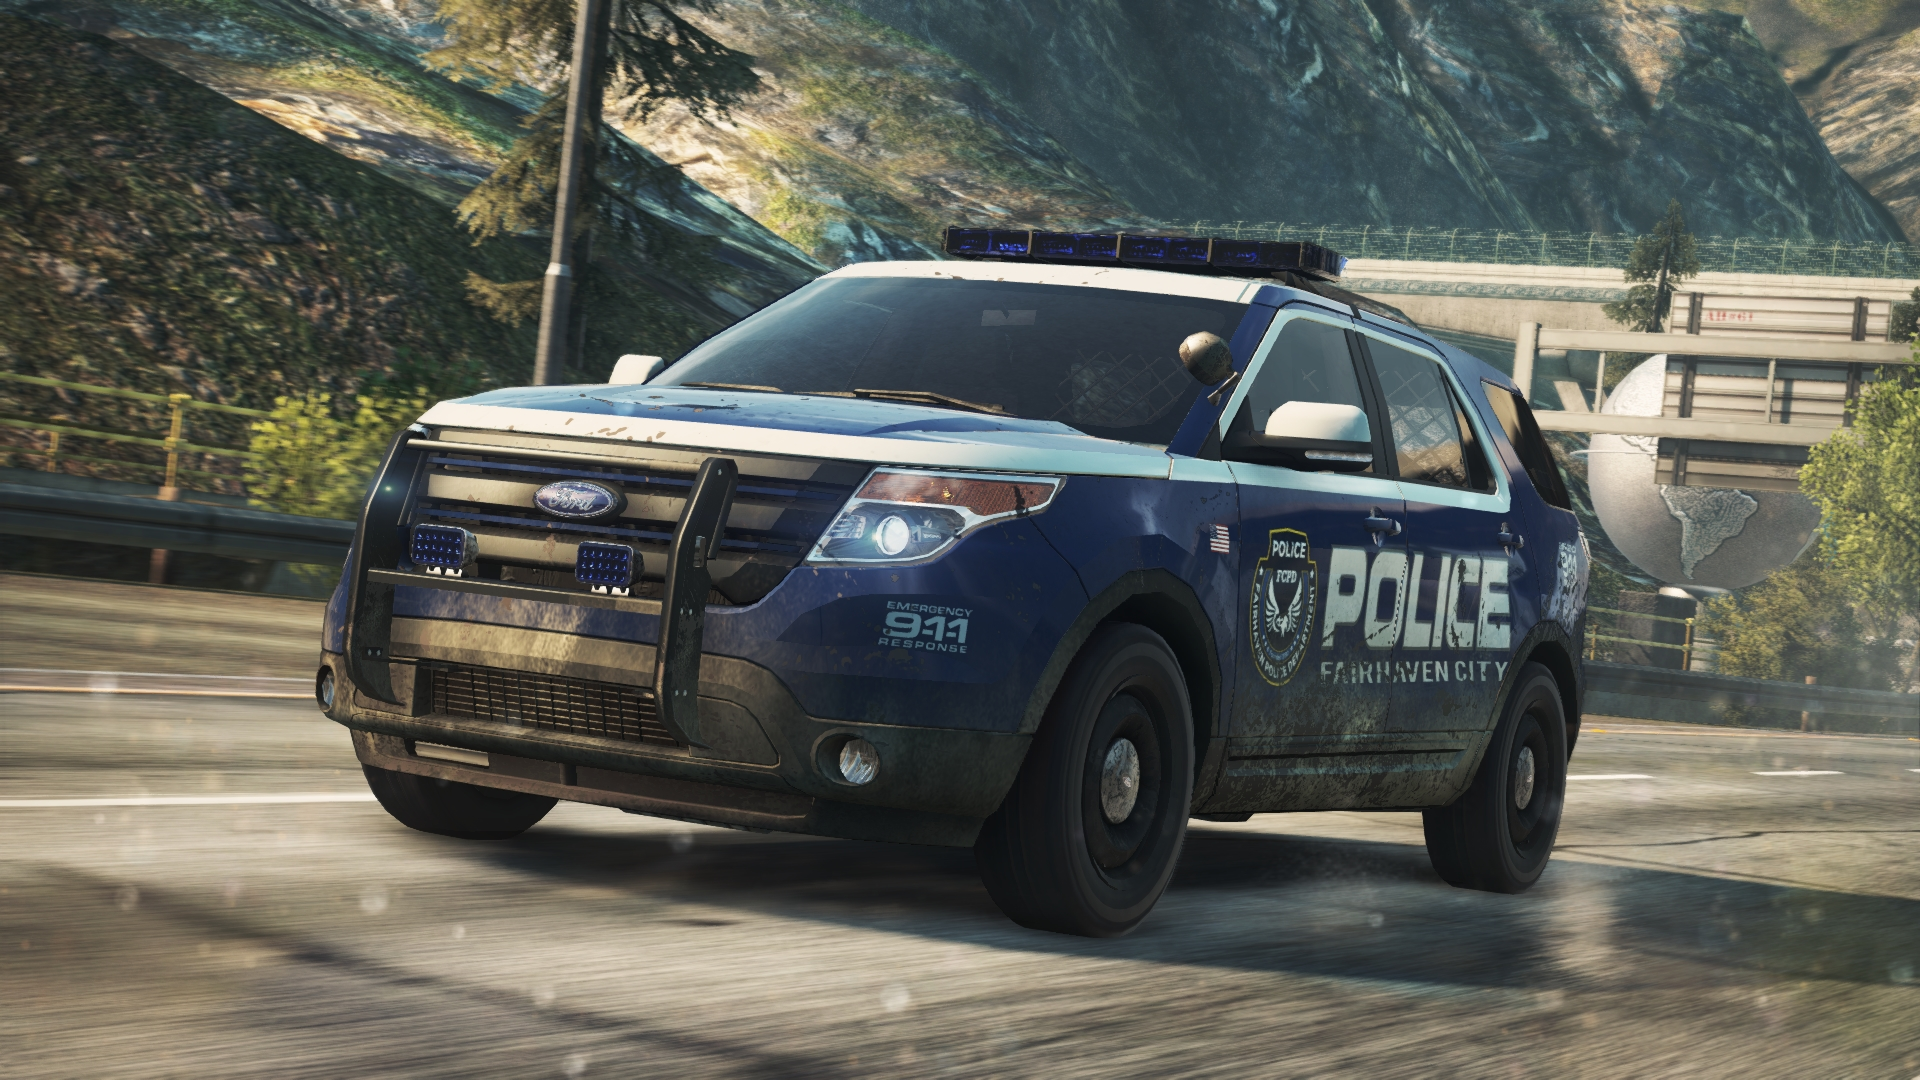 Palm Bay Ford >> Ford Police Interceptor Utility (Concept) | Need for Speed ...